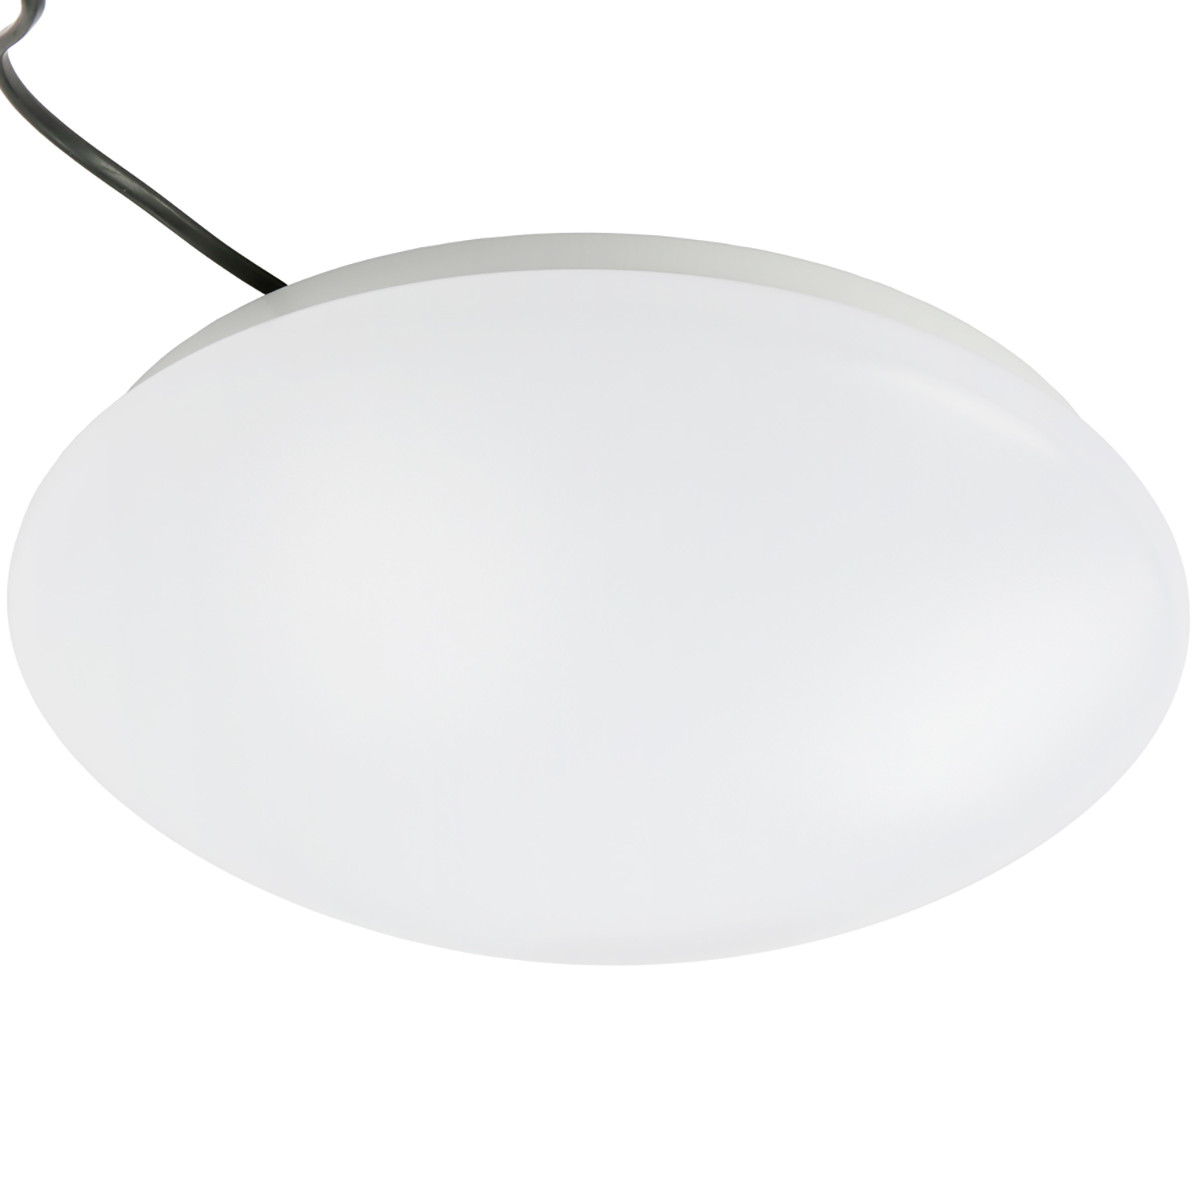 24W 14.96 inch Modern LED Flush Mount Ceiling Light Fixture for Any Room Round Acrylic Shade White Finish Mushroom Shape and CCT changable